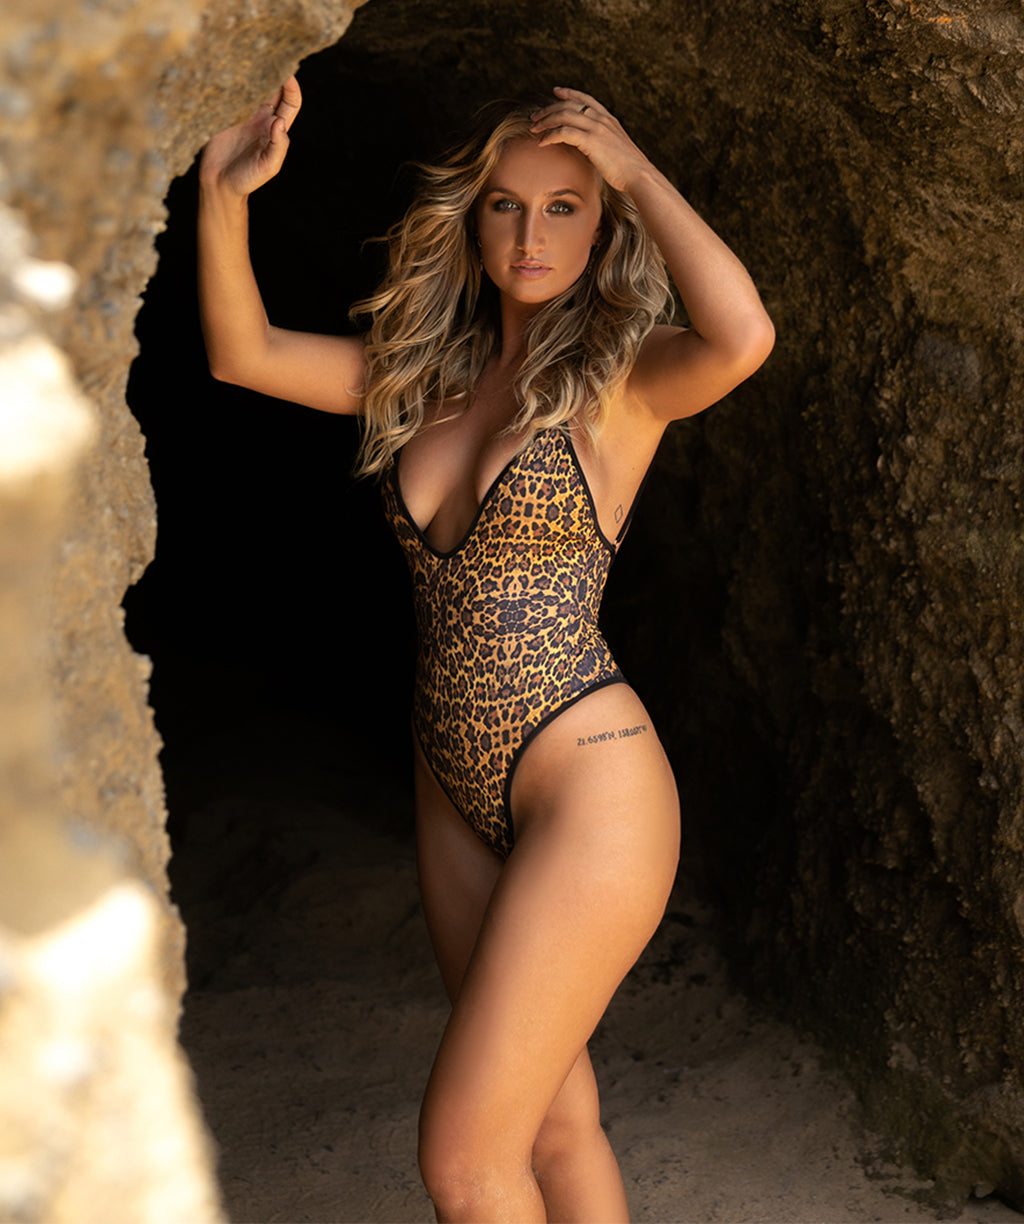 Gisele Sexy One Piece Swimsuit with High Cut Thigh and Cheeky Butt in Leopard Print